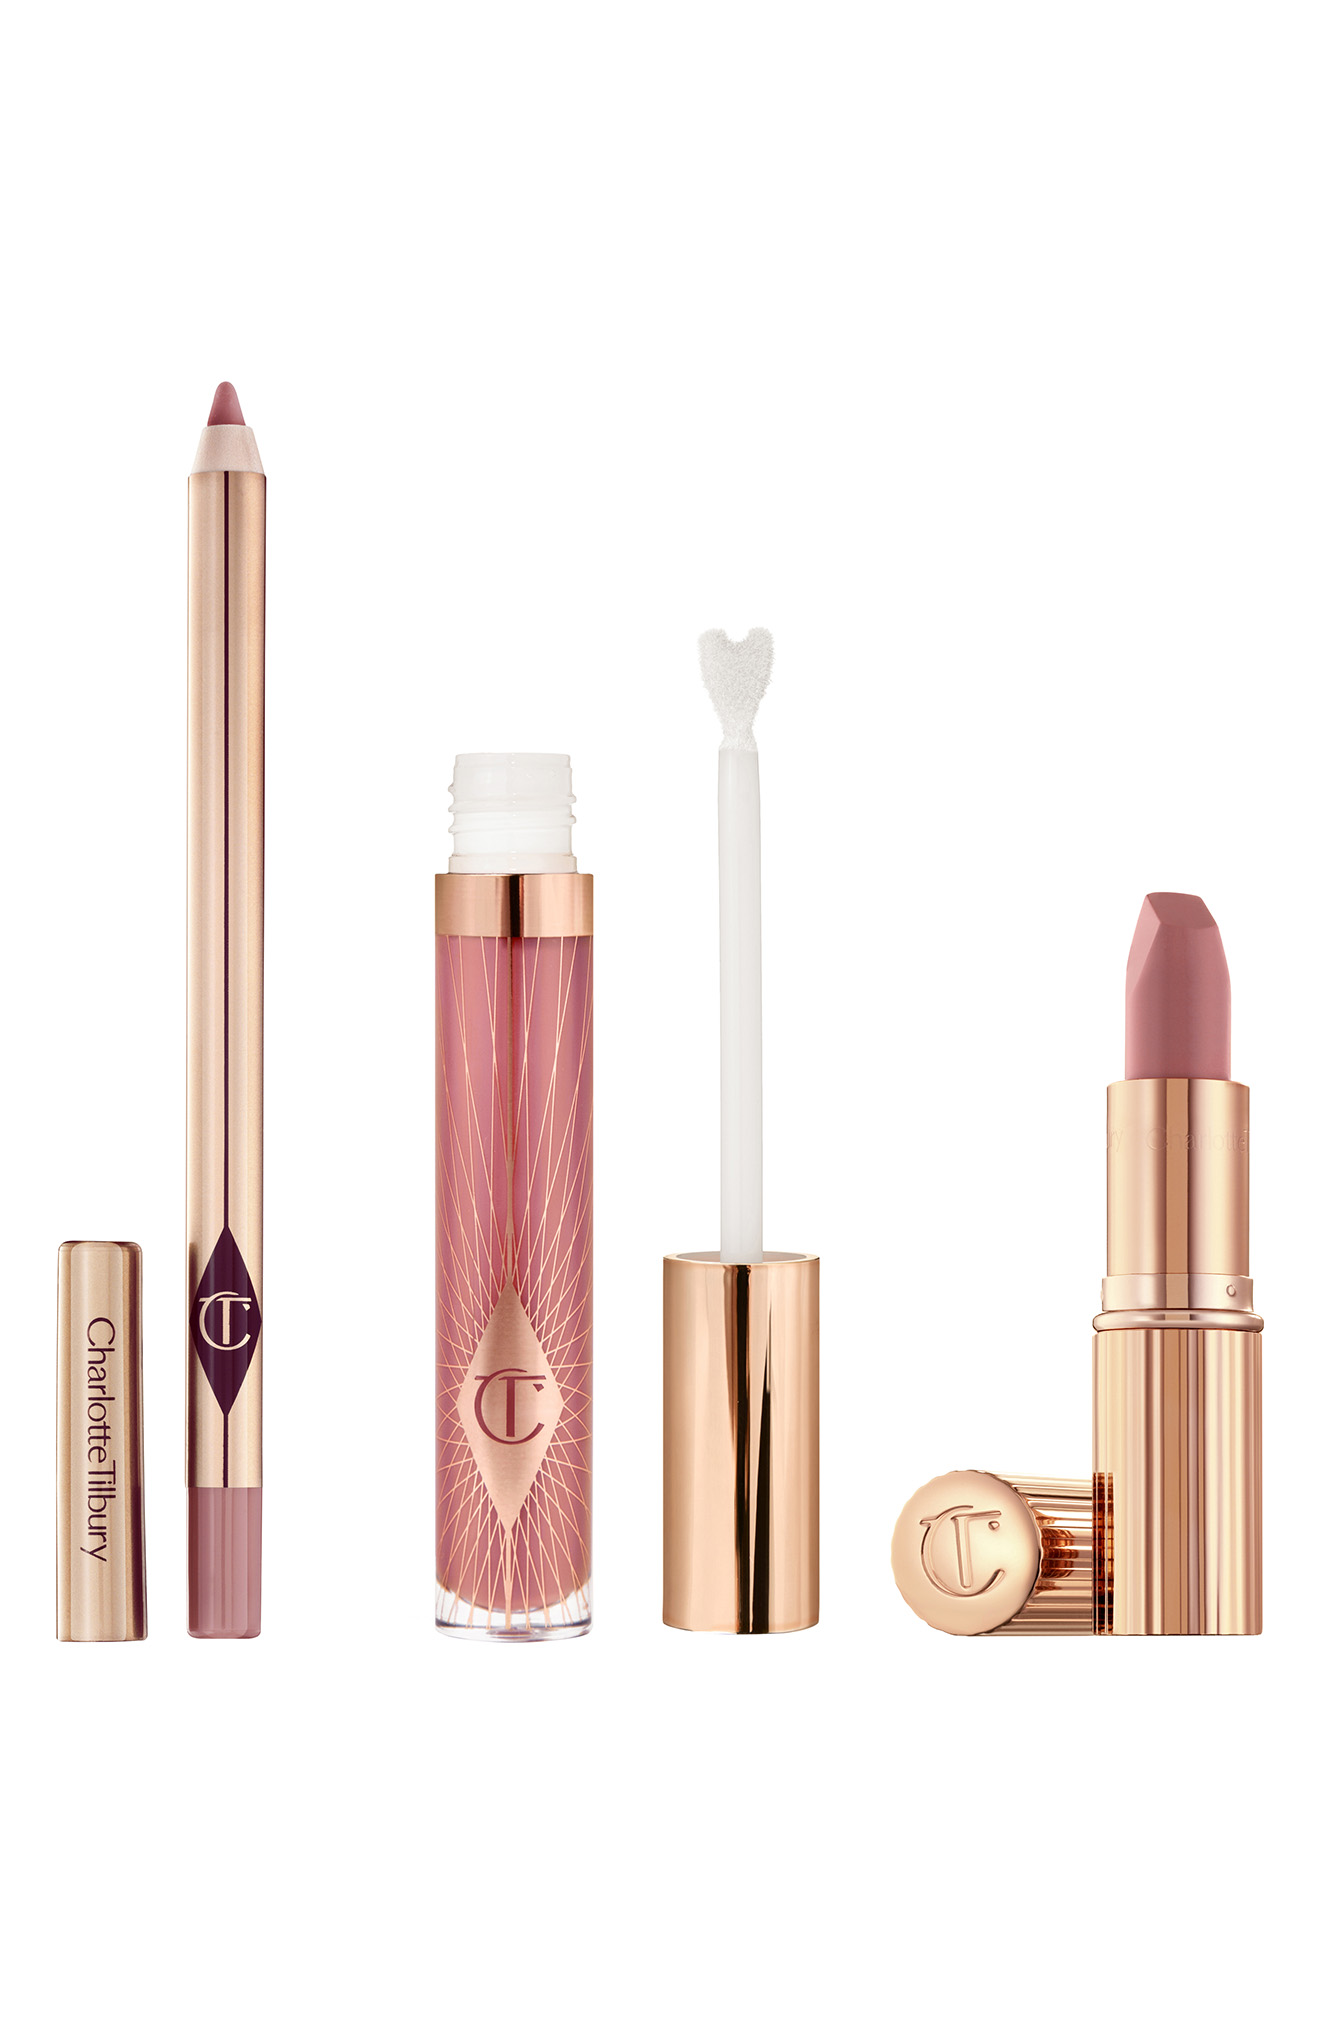 "Perfect your pout with{&nbsp;}<a  href=""https://www.nordstrom.com/s/charlotte-tilbury-pillow-talk-lip-secrets-set-91-value/5585559?origin=keywordsearch-personalizedsort&breadcrumb=Home%2FAll%20Results&color=none"" target=""_blank"" title=""https://www.nordstrom.com/s/charlotte-tilbury-pillow-talk-lip-secrets-set-91-value/5585559?origin=keywordsearch-personalizedsort&breadcrumb=Home%2FAll%20Results&color=none"">Charlotte Tilbury Pillow Talk</a>{&nbsp;}Lip Secrets, $68 ($91 after sale) (Image: Nordstrom)"